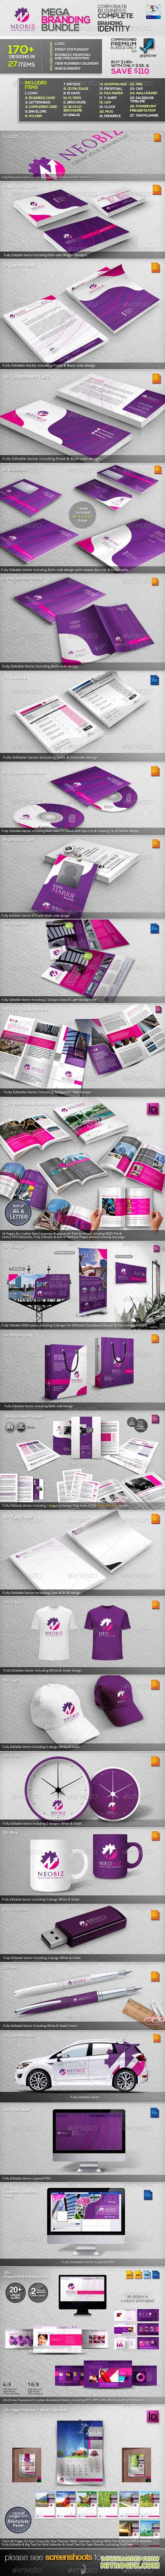 GR - NeoBiz: Corporate Business ID Mega Branding Bundle 3427614